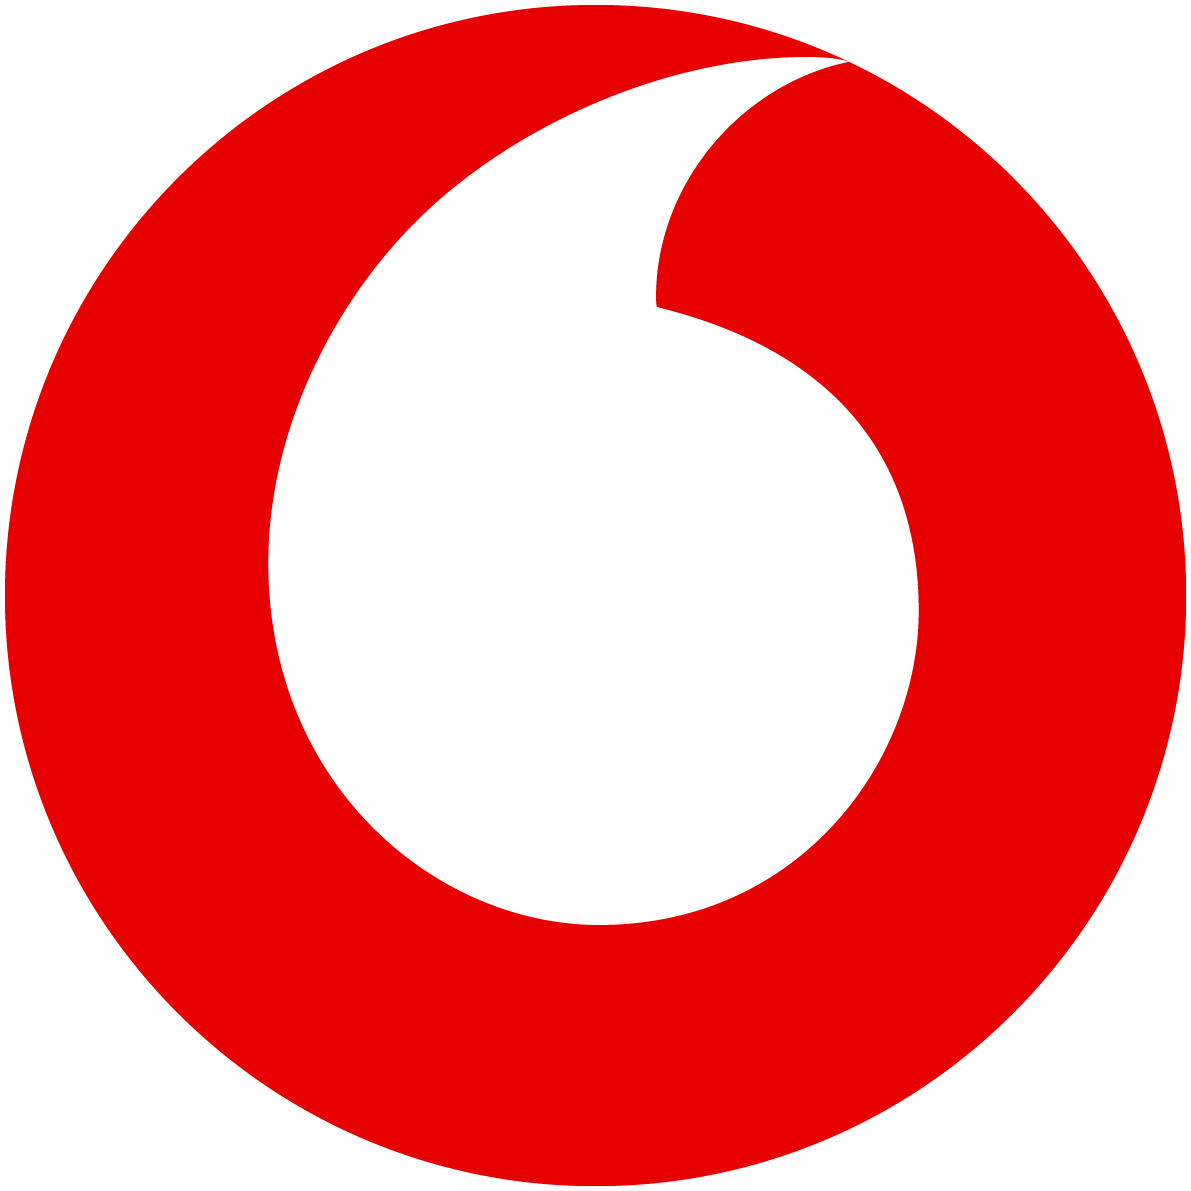 how to find working payload for vodafone